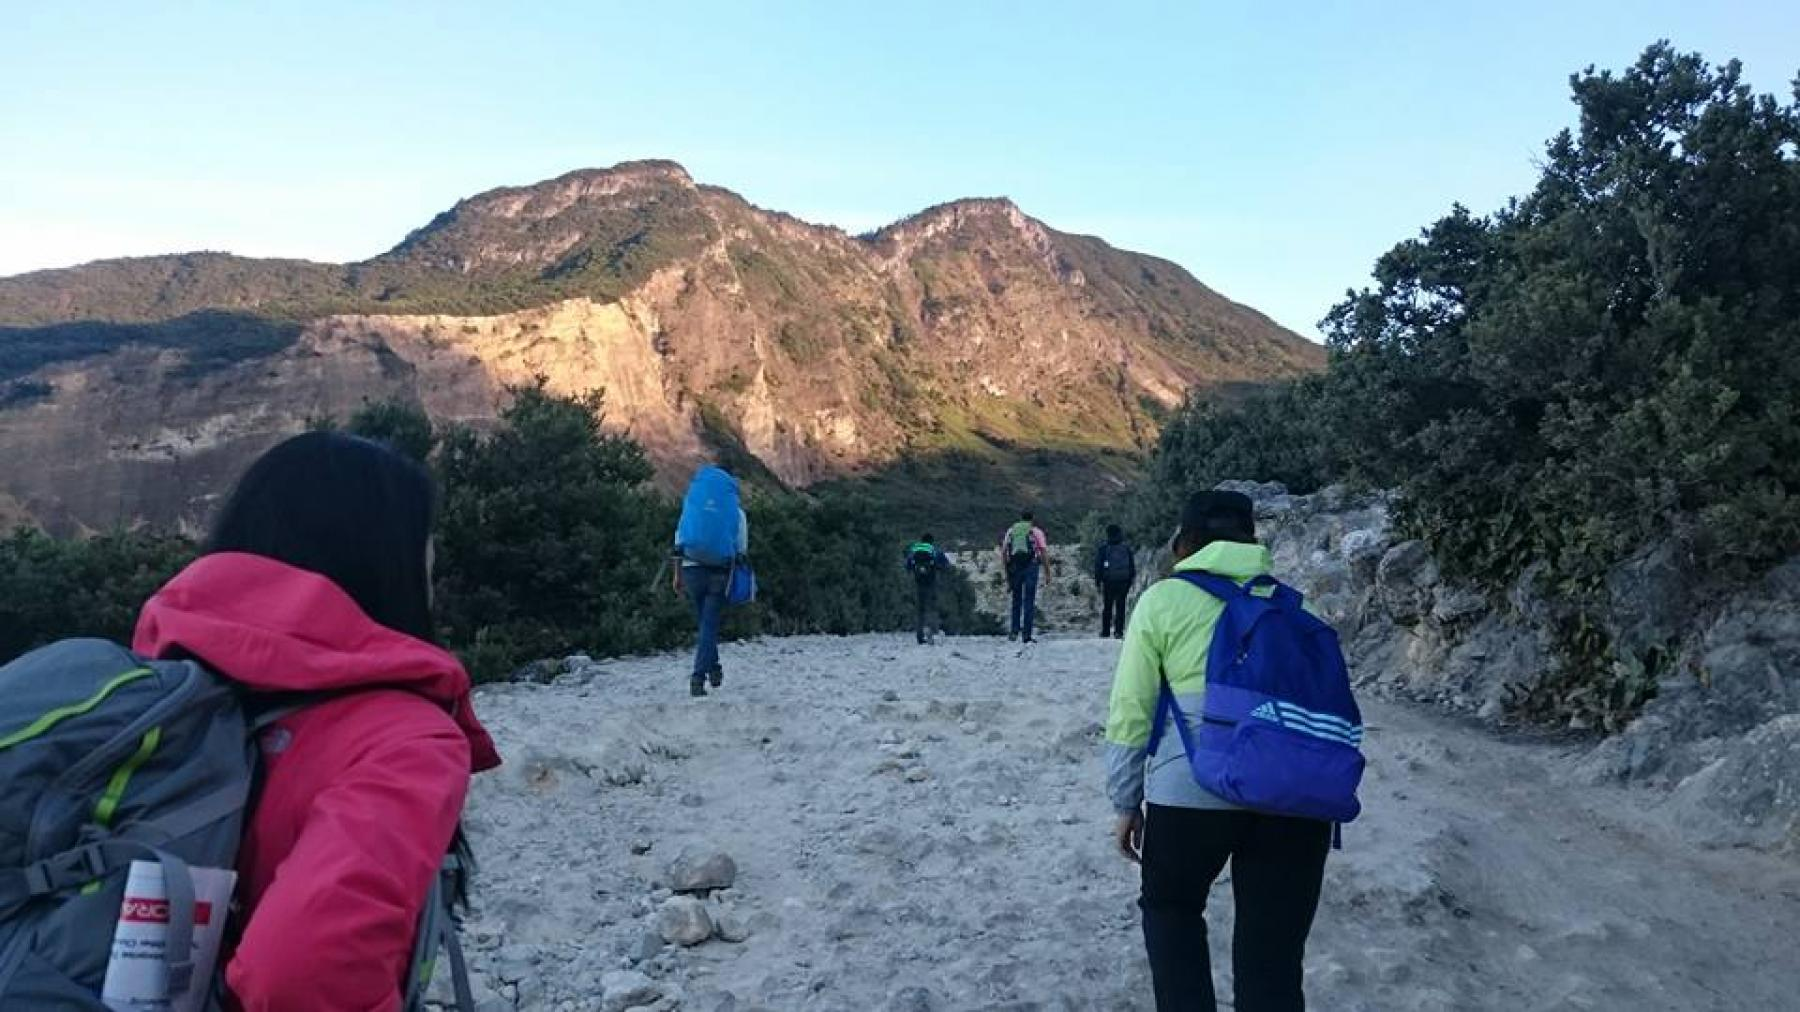 [3D2N] Sunrise Trekking at Mt. Papandayan starting at Bandung, Bandung City, West Java, Indonesia